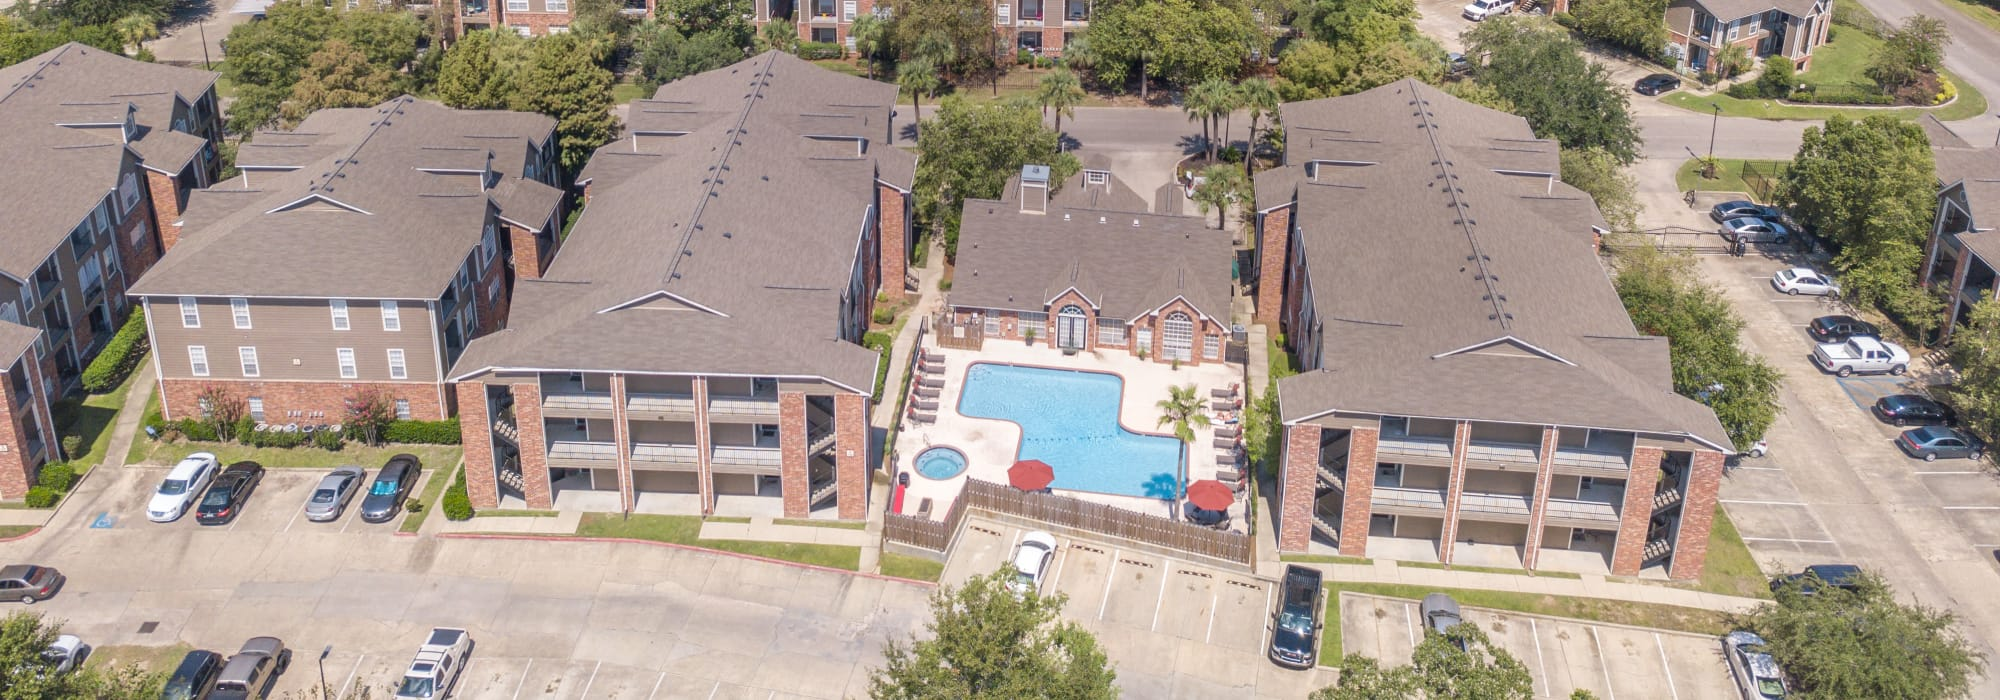 Apartments at The Lexington Apartment Homes in Biloxi, Mississippi